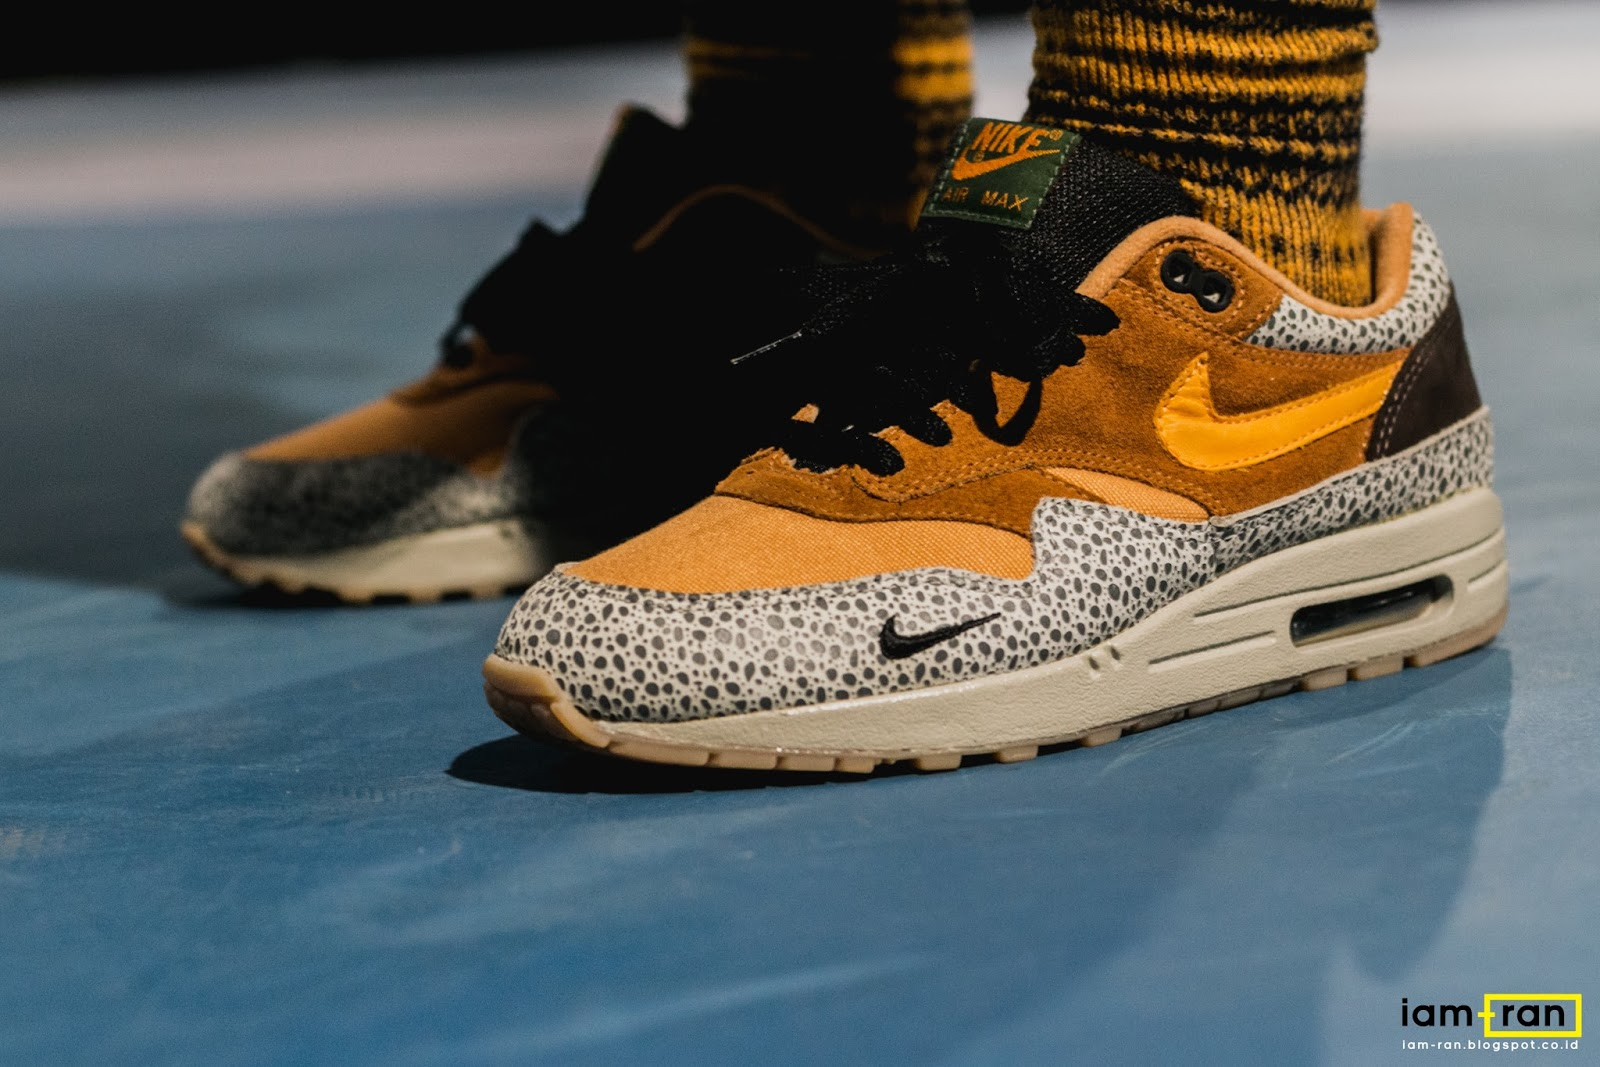 half off 90d4f 8d21e IAM-RAN: ON FEET : Leo - Nike Air Max 1 x Atmost -